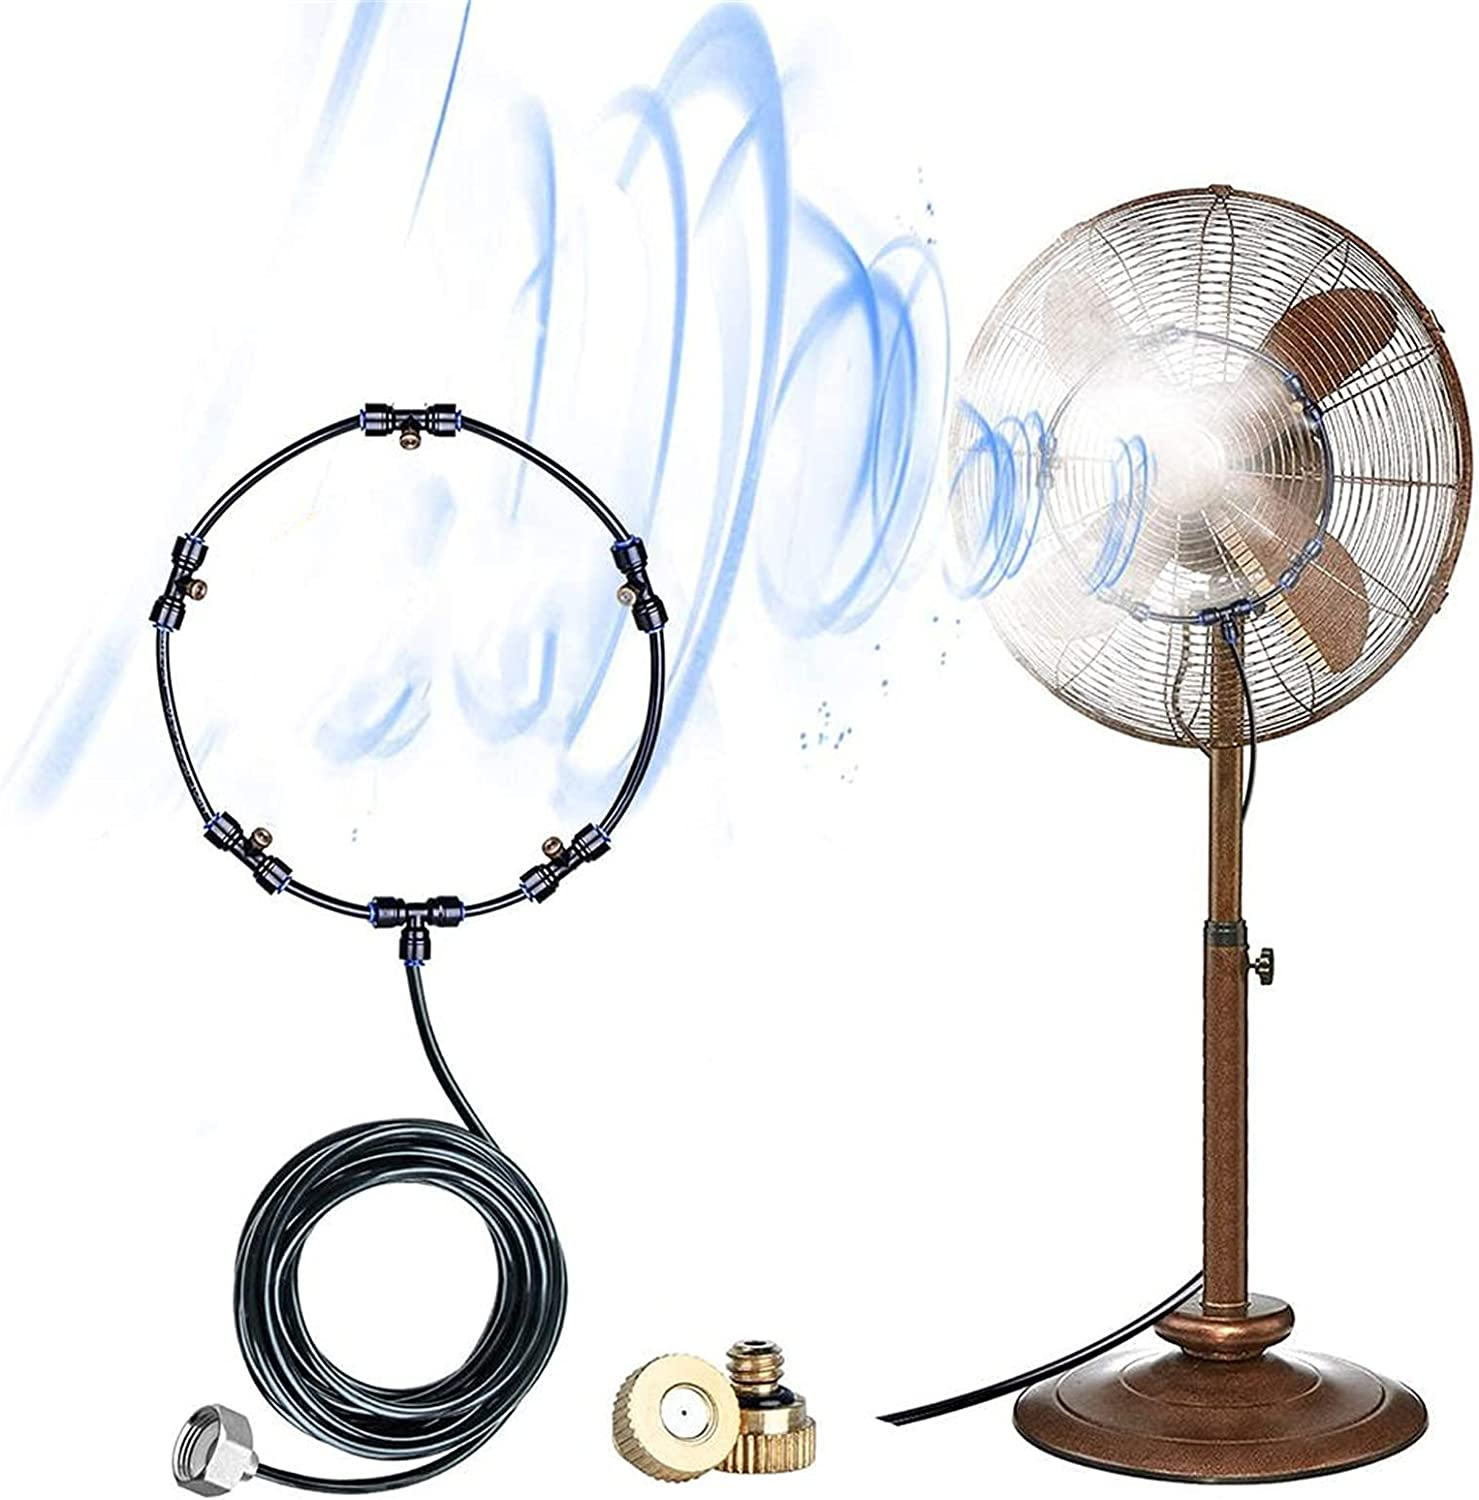 Gmjay Super beauty product restock quality top Fan Misting outlet Kit - Misters with for Outdoor 5 Cooling M